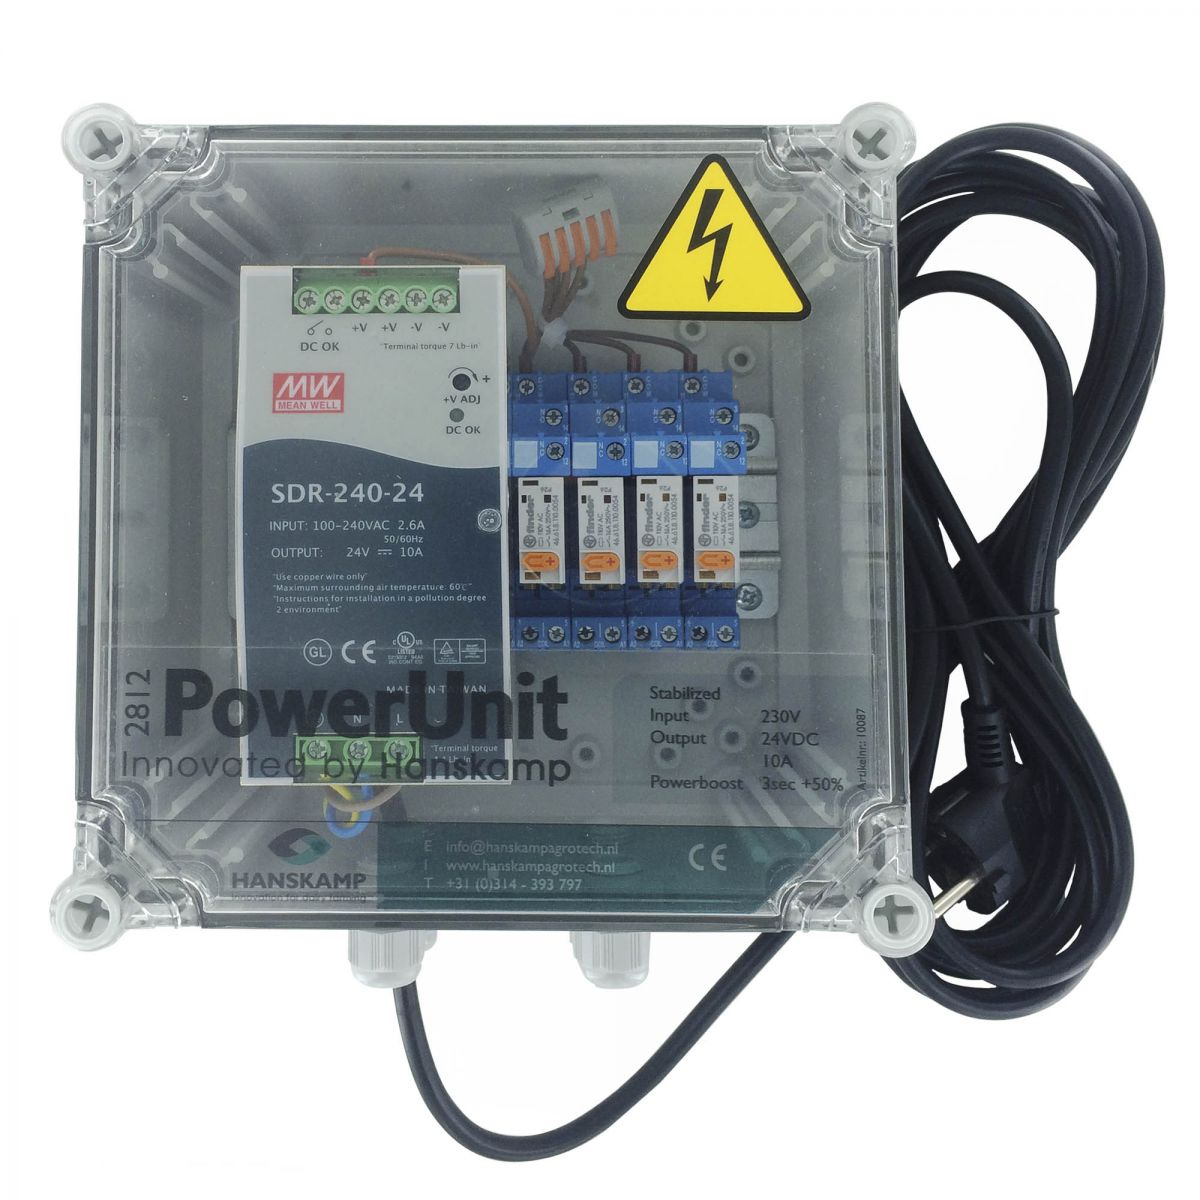 powerunit 24v dc 10a for lport with relay 115v 4 types of food